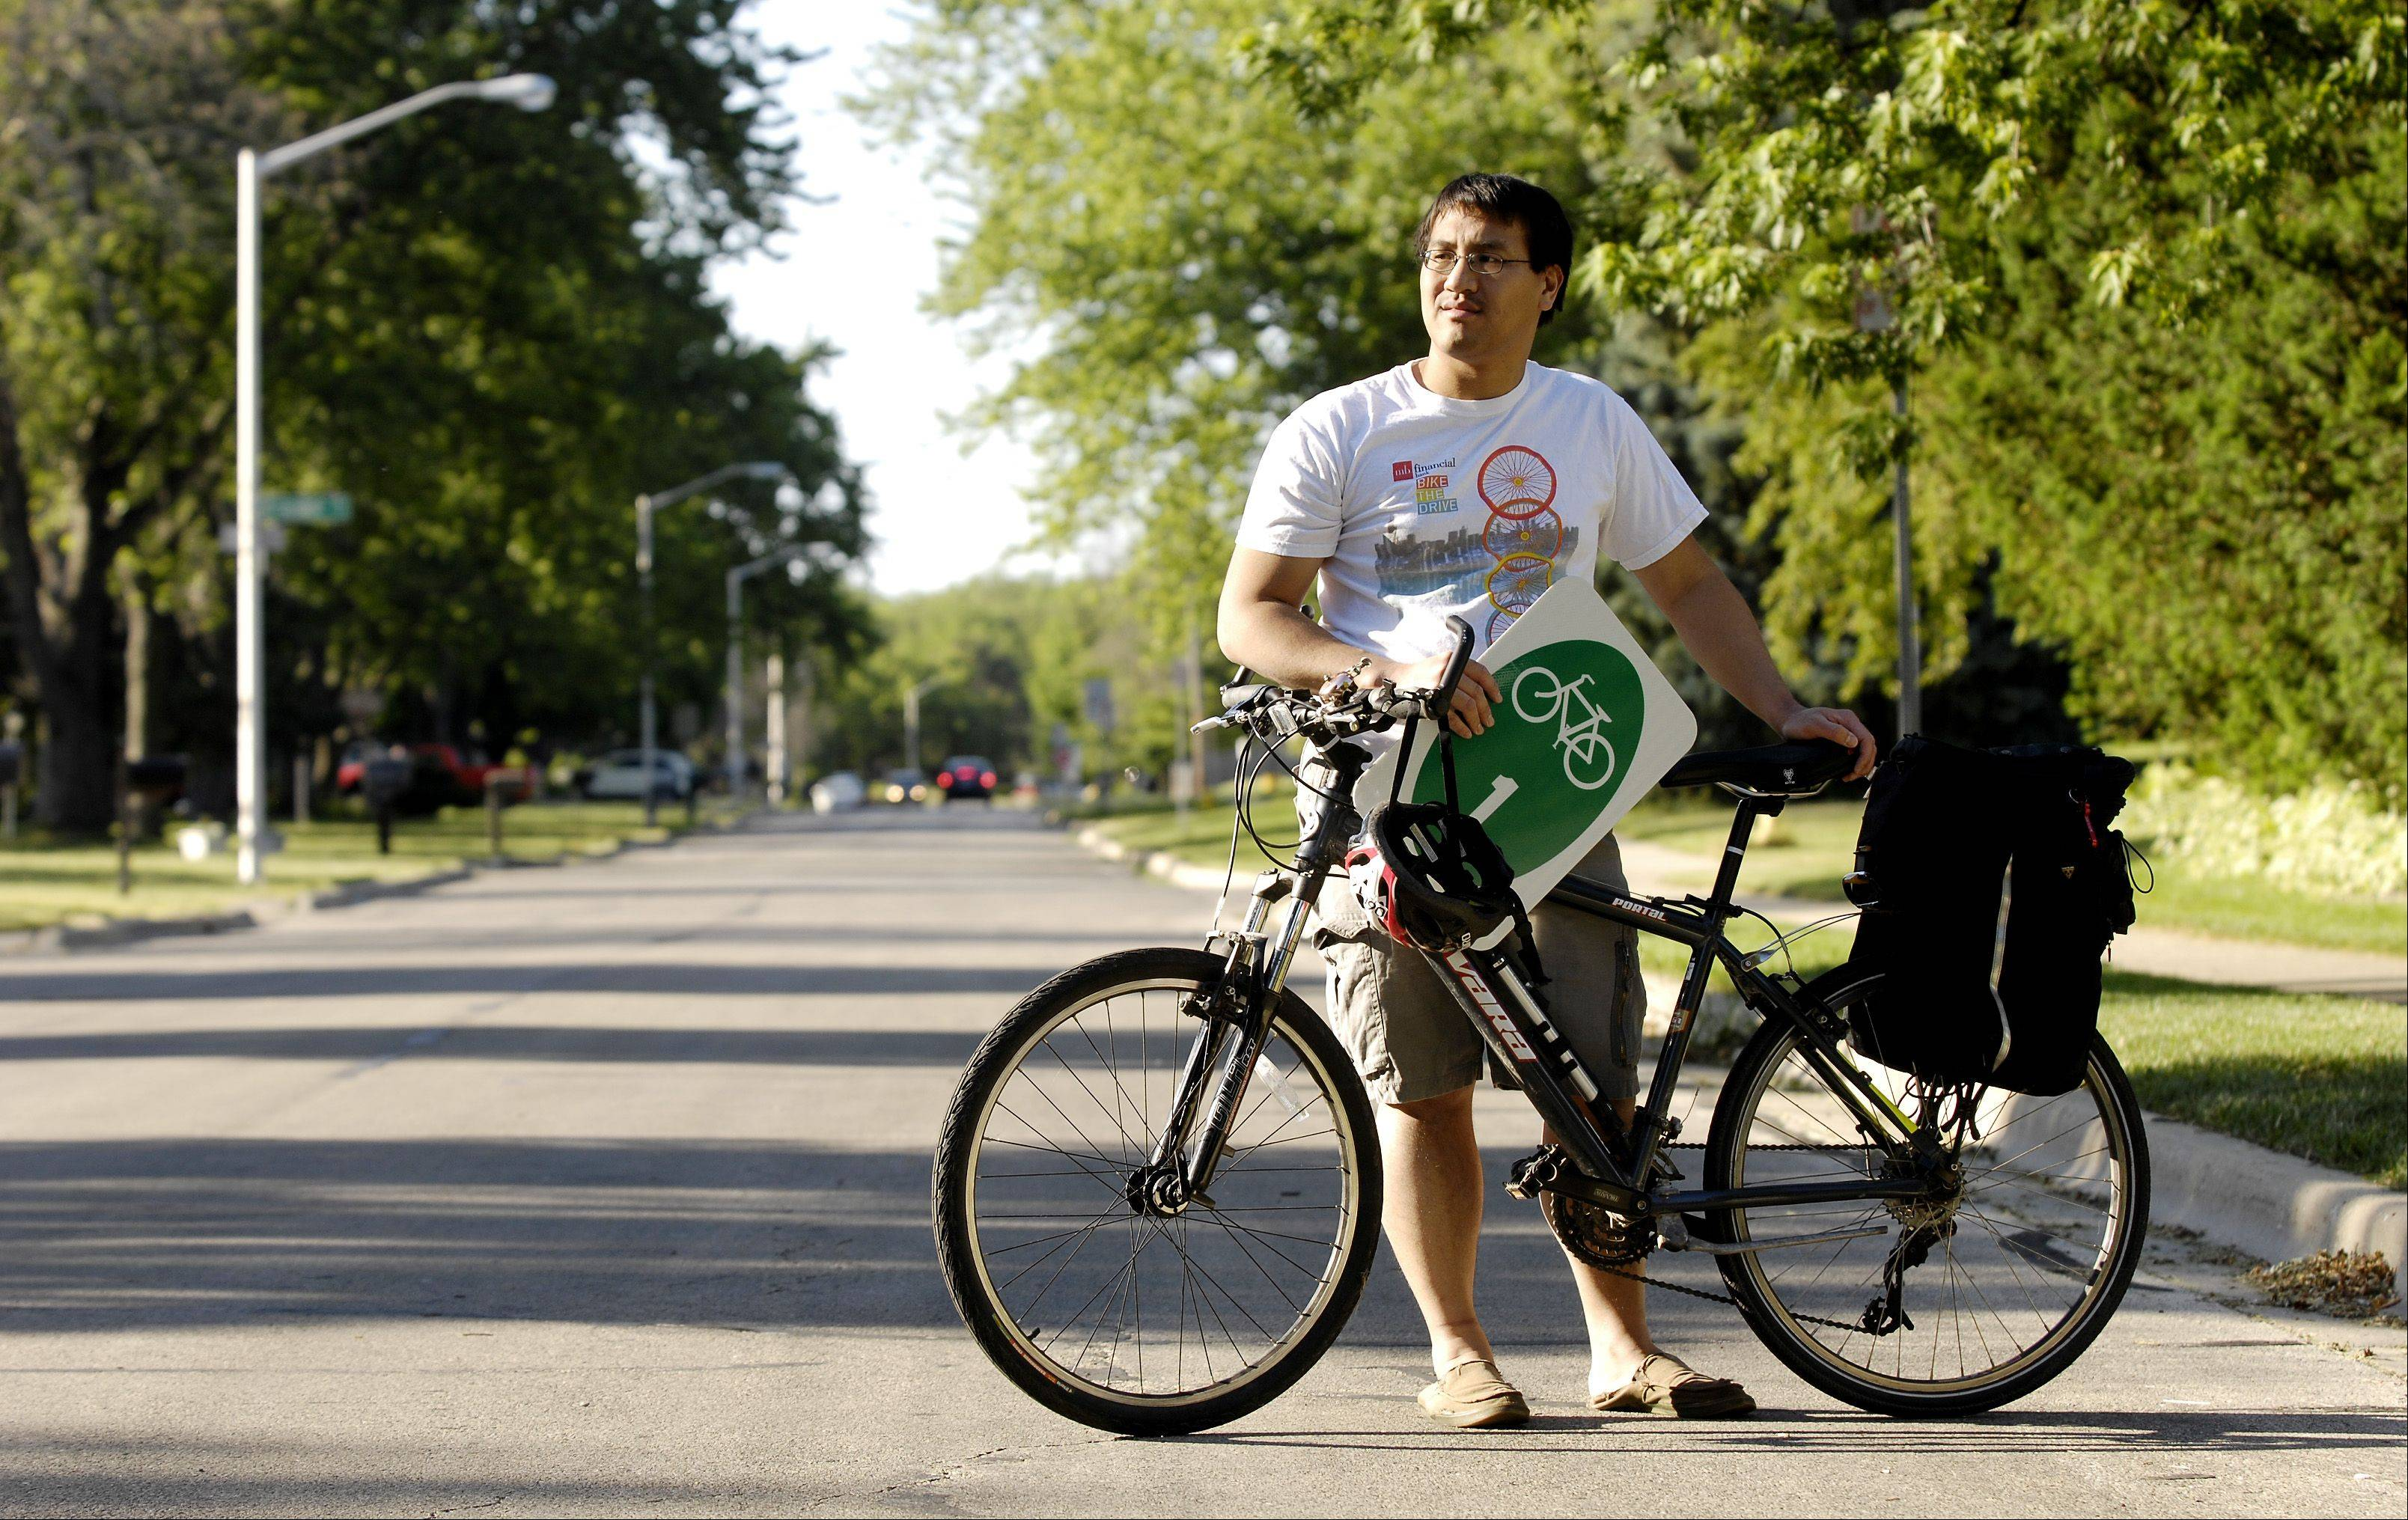 Carol Stream bicycling enthusiast seeks on-street bike trails